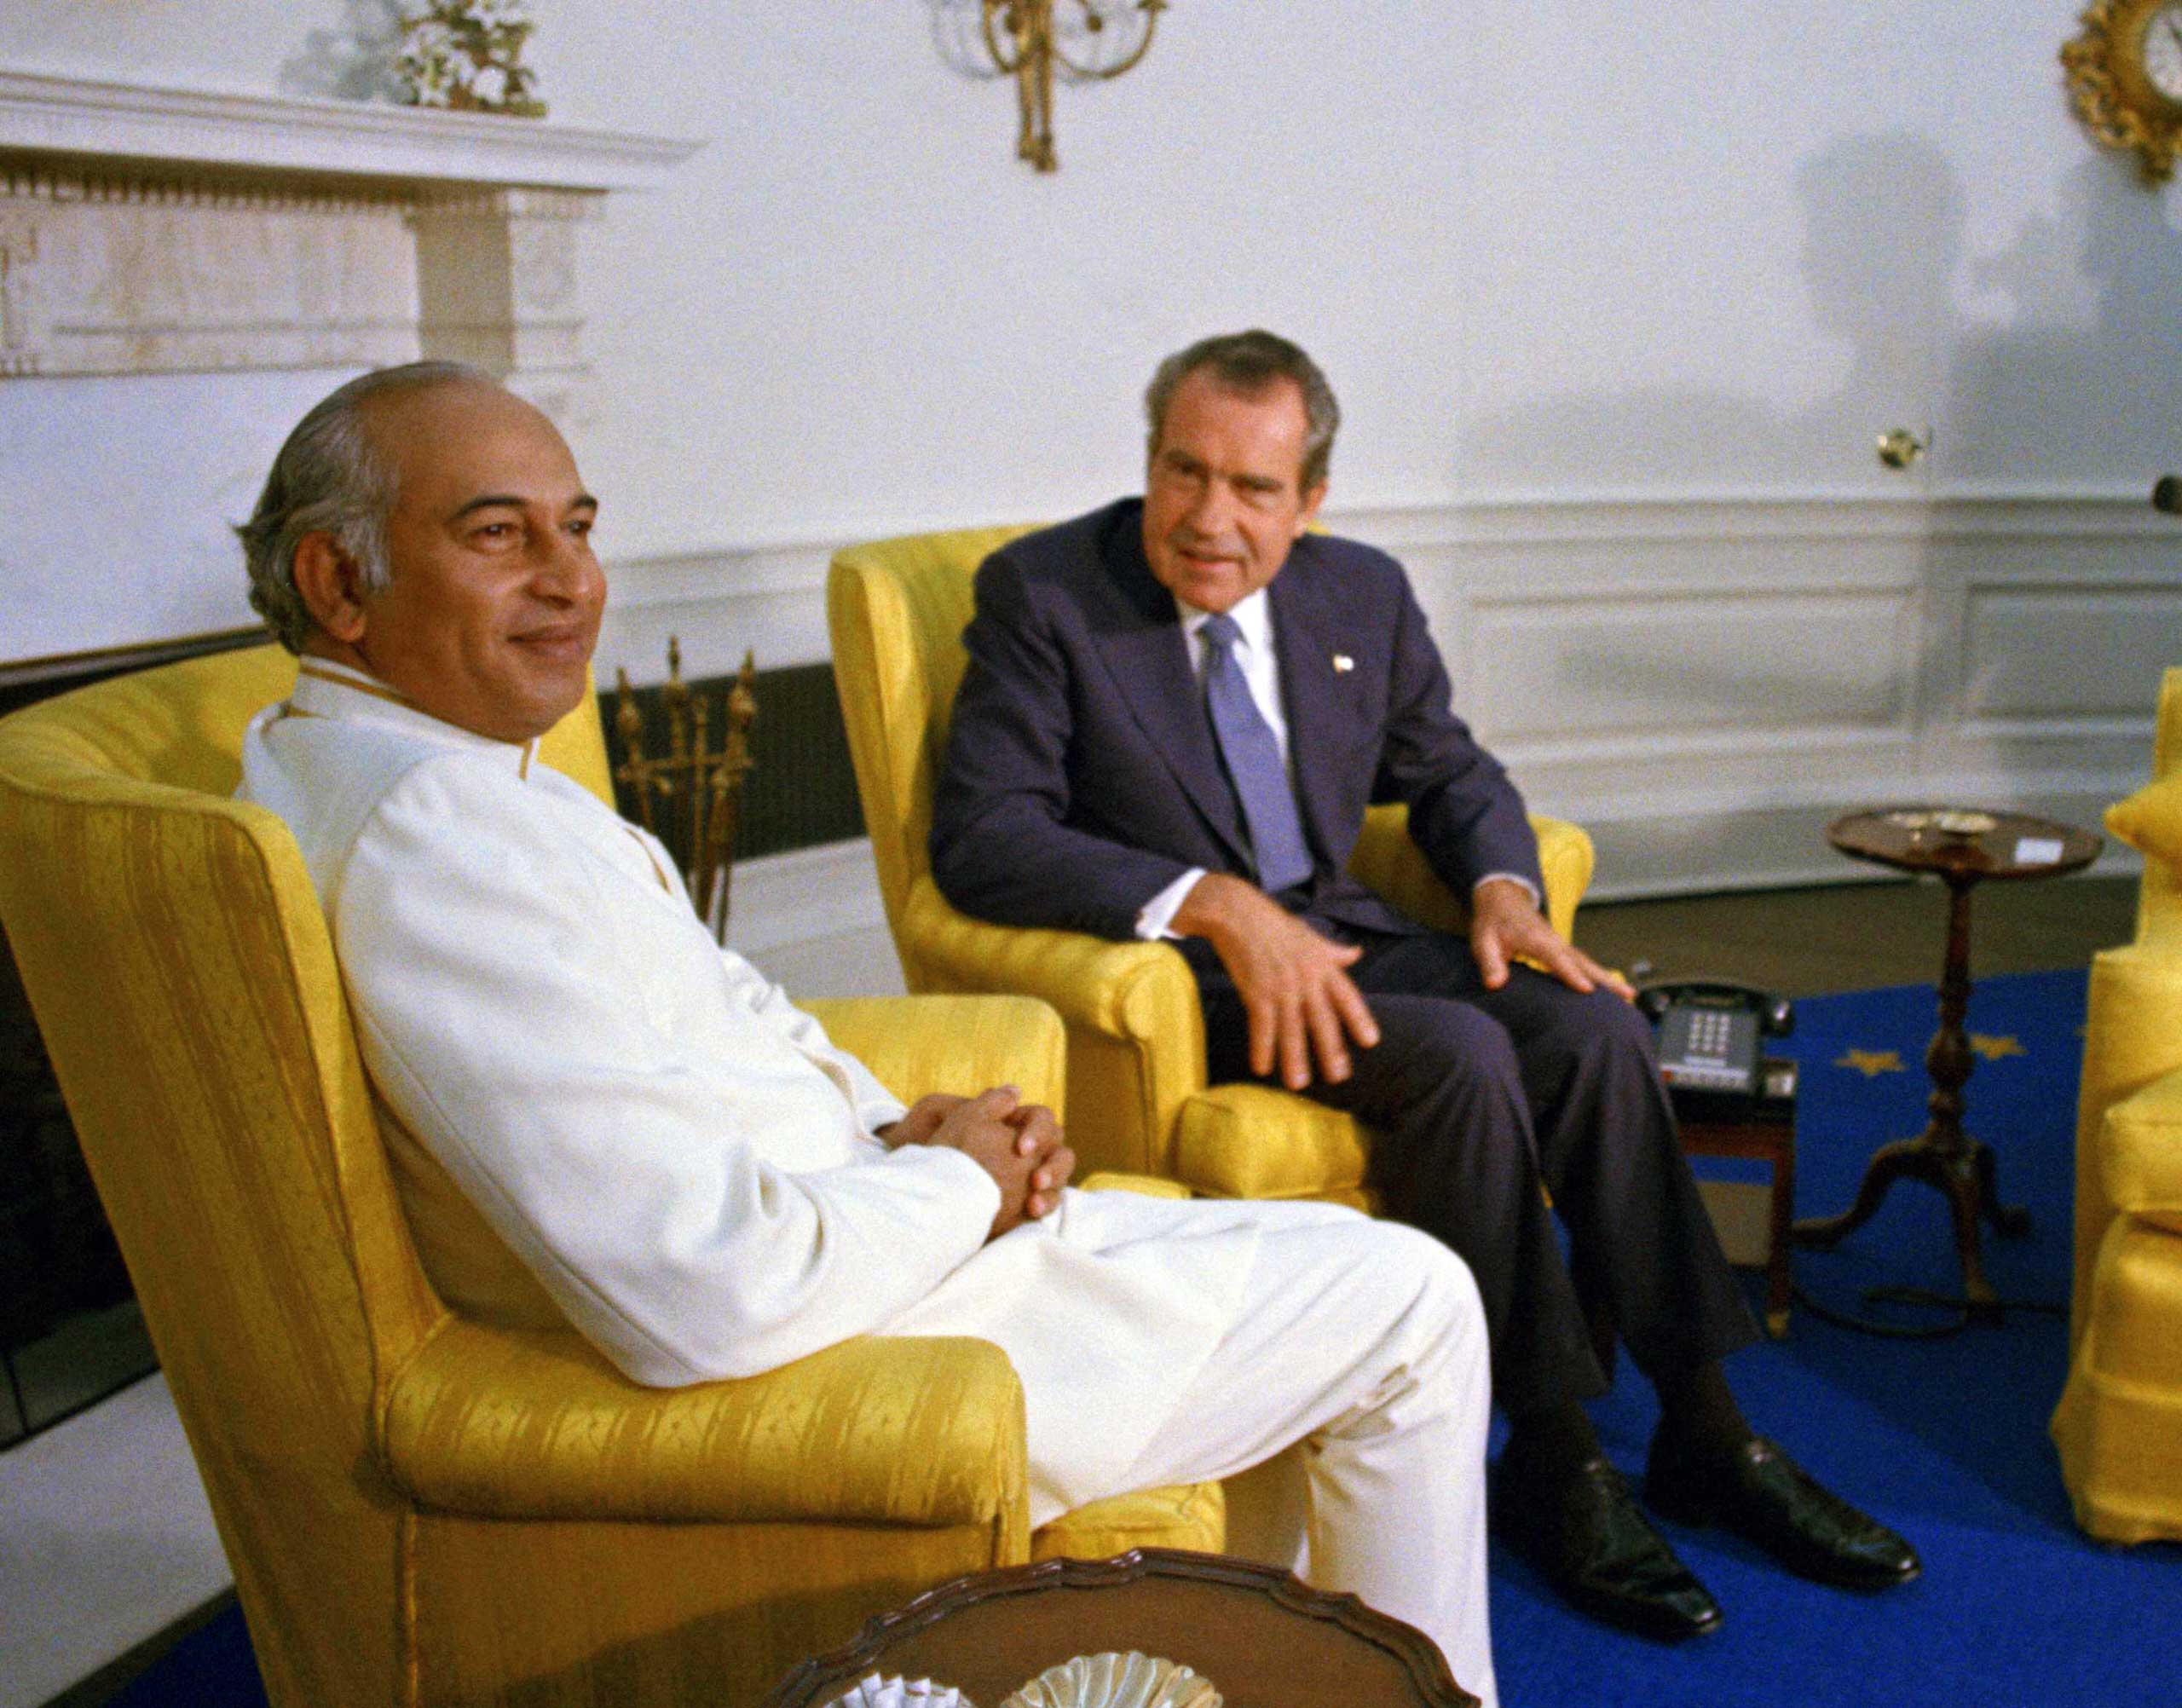 <b>1973:</b> In the early 70s, America's relationship with India deteriorated as the Nixon administration became close allies with Pakistan, viewing India as an ally of the Soviet Union. Here, President Nixon meets with Prime Minister Zulfiqar Ali Bhutto of Pakistan in the oval office of the White House in Washington on Sept. 18, 1973.